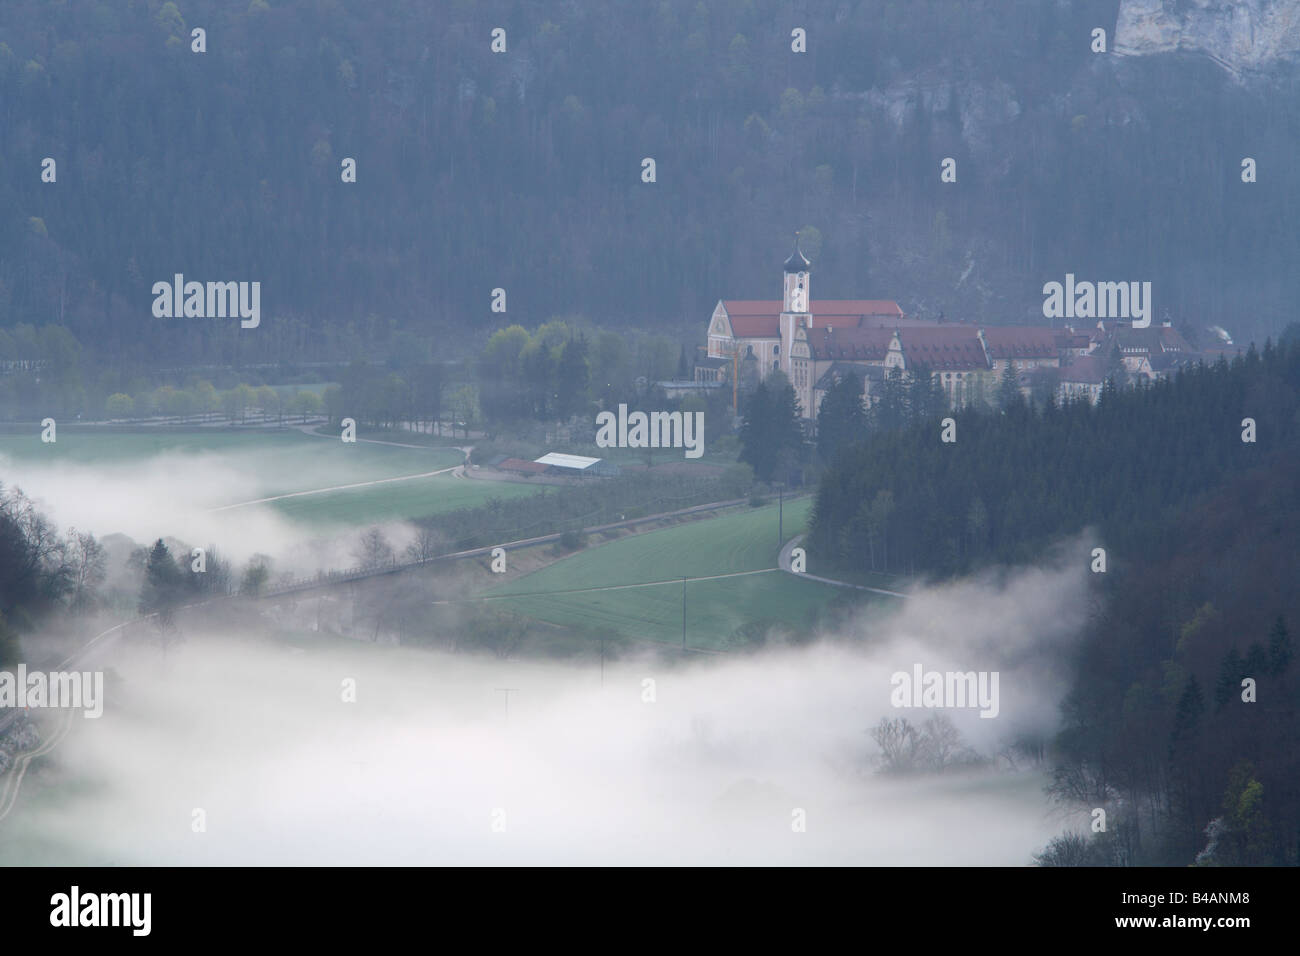 Beuron claustral cloister cloistral convent friary fog haze Danube Valley Germany Stock Photo